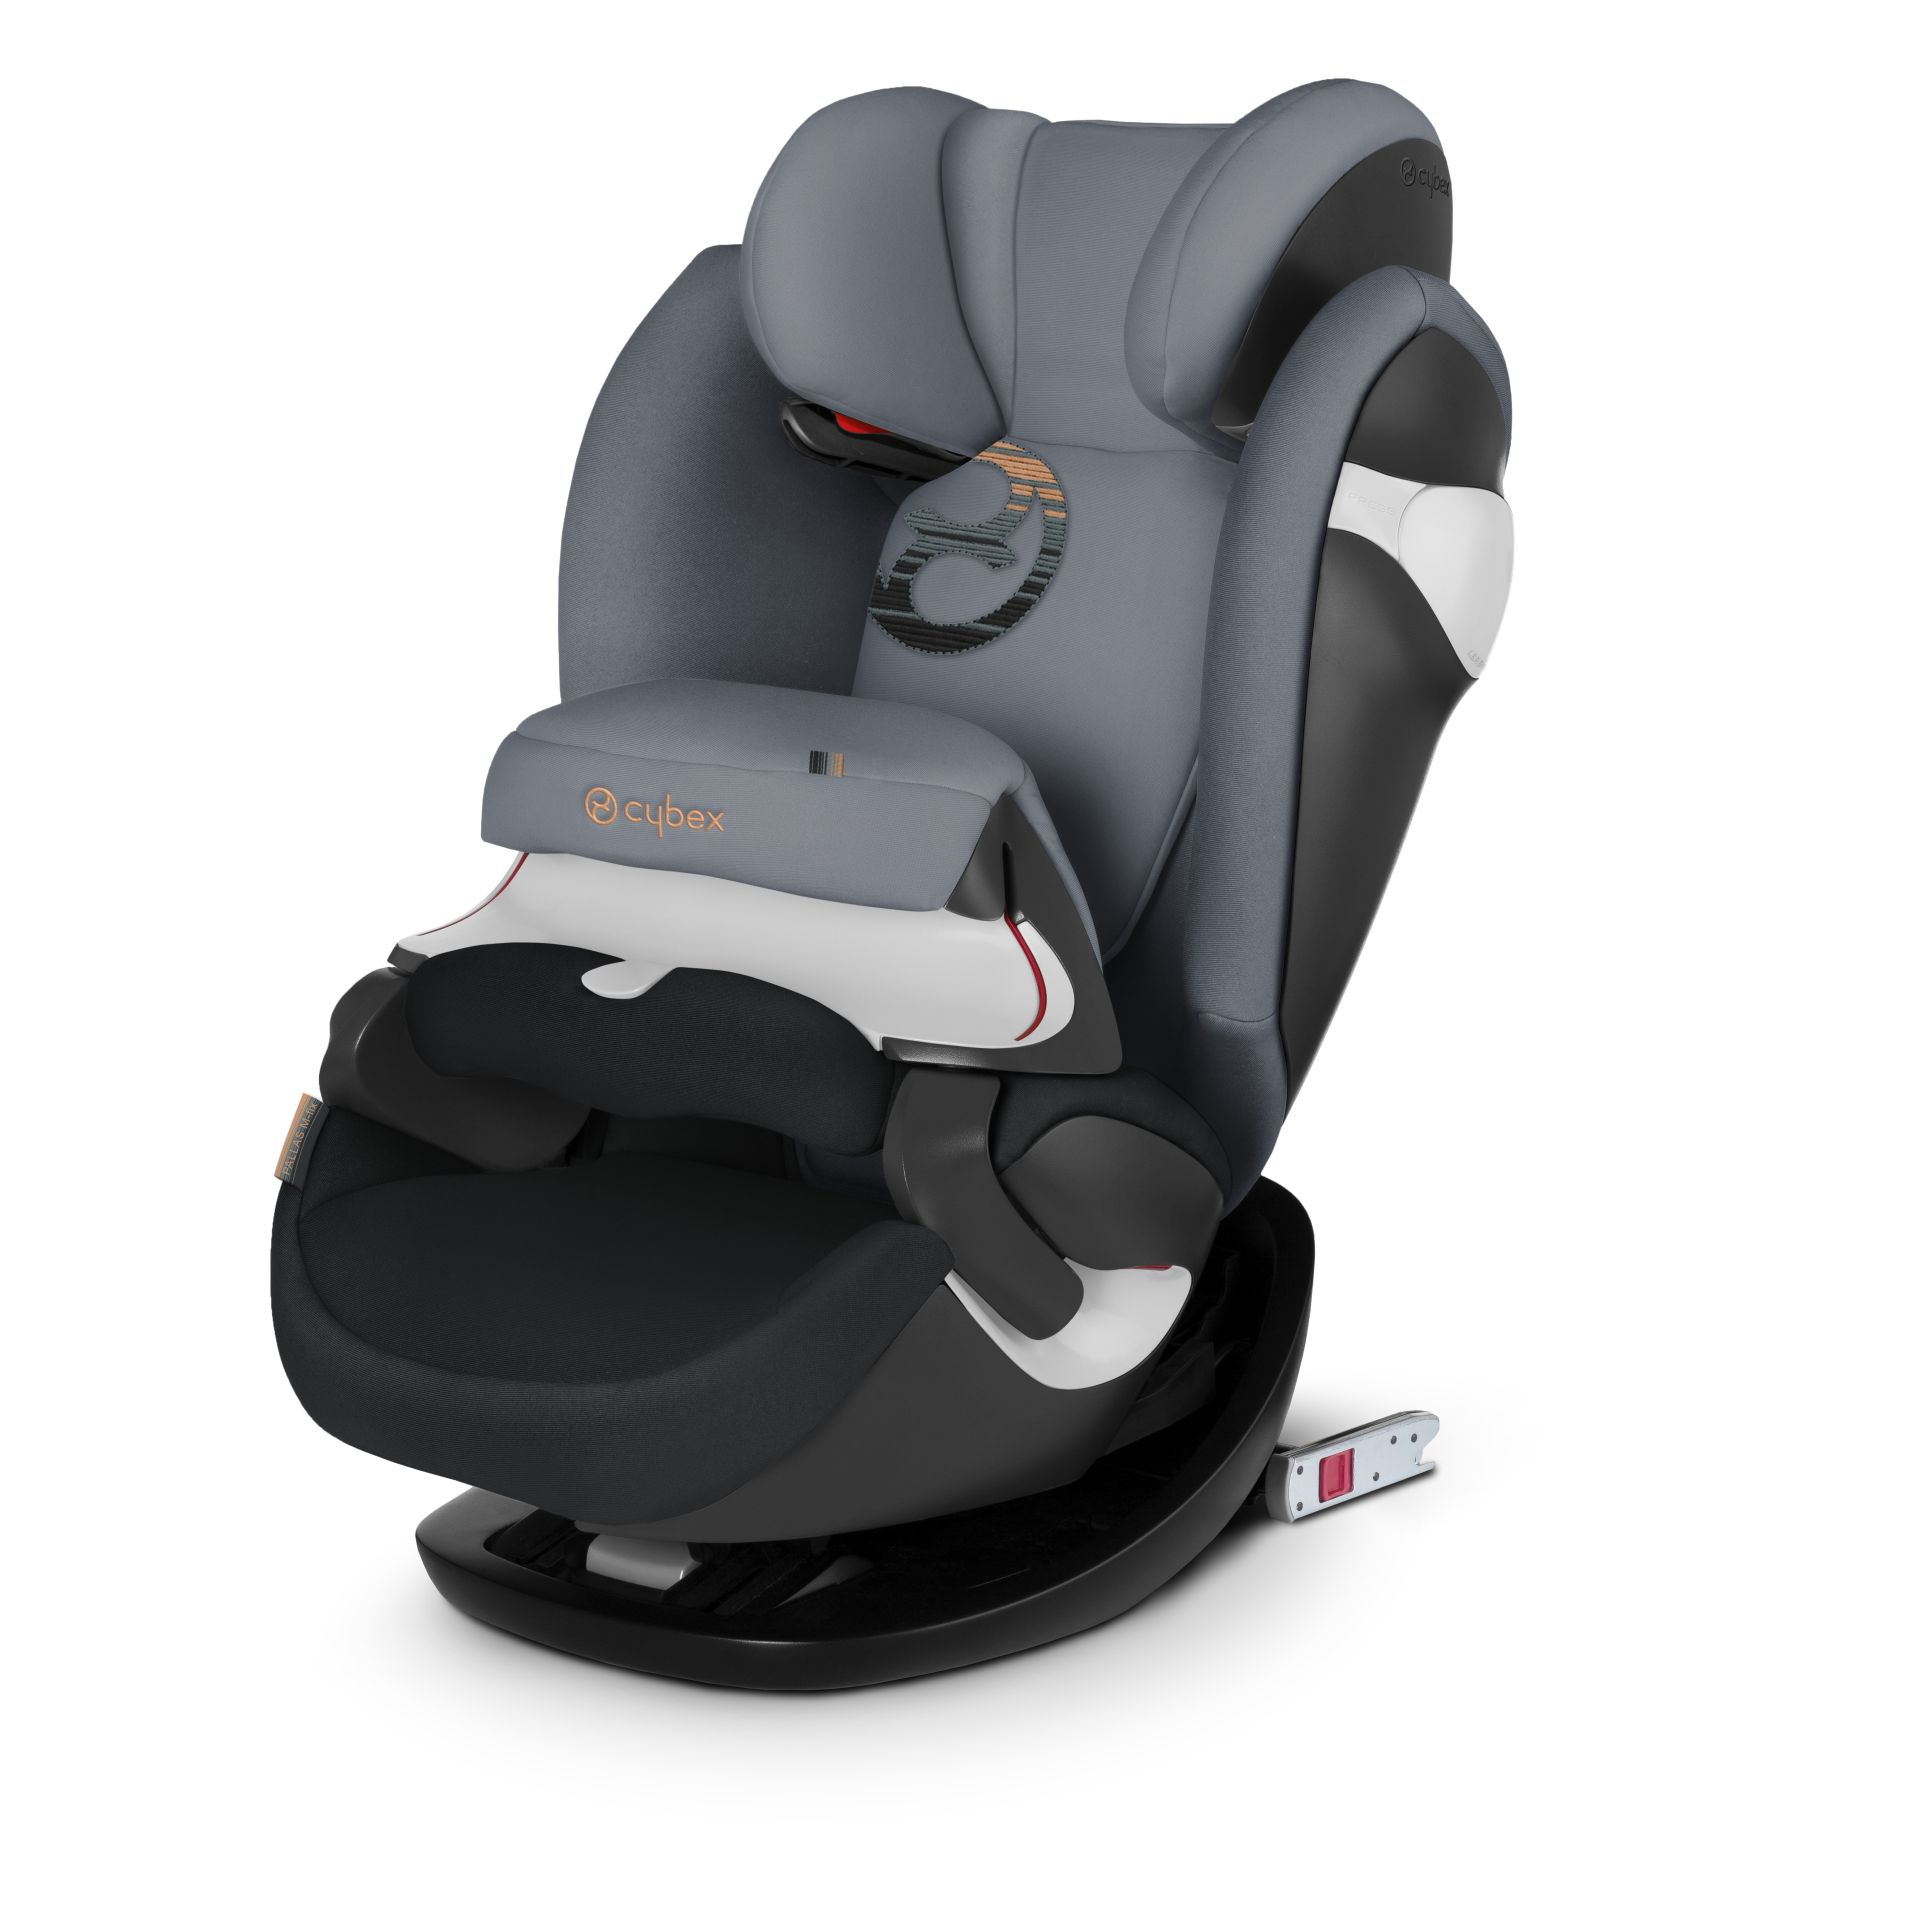 cybex child car seat pallas m fix 2018 pepper black dark grey buy at kidsroom car seats. Black Bedroom Furniture Sets. Home Design Ideas